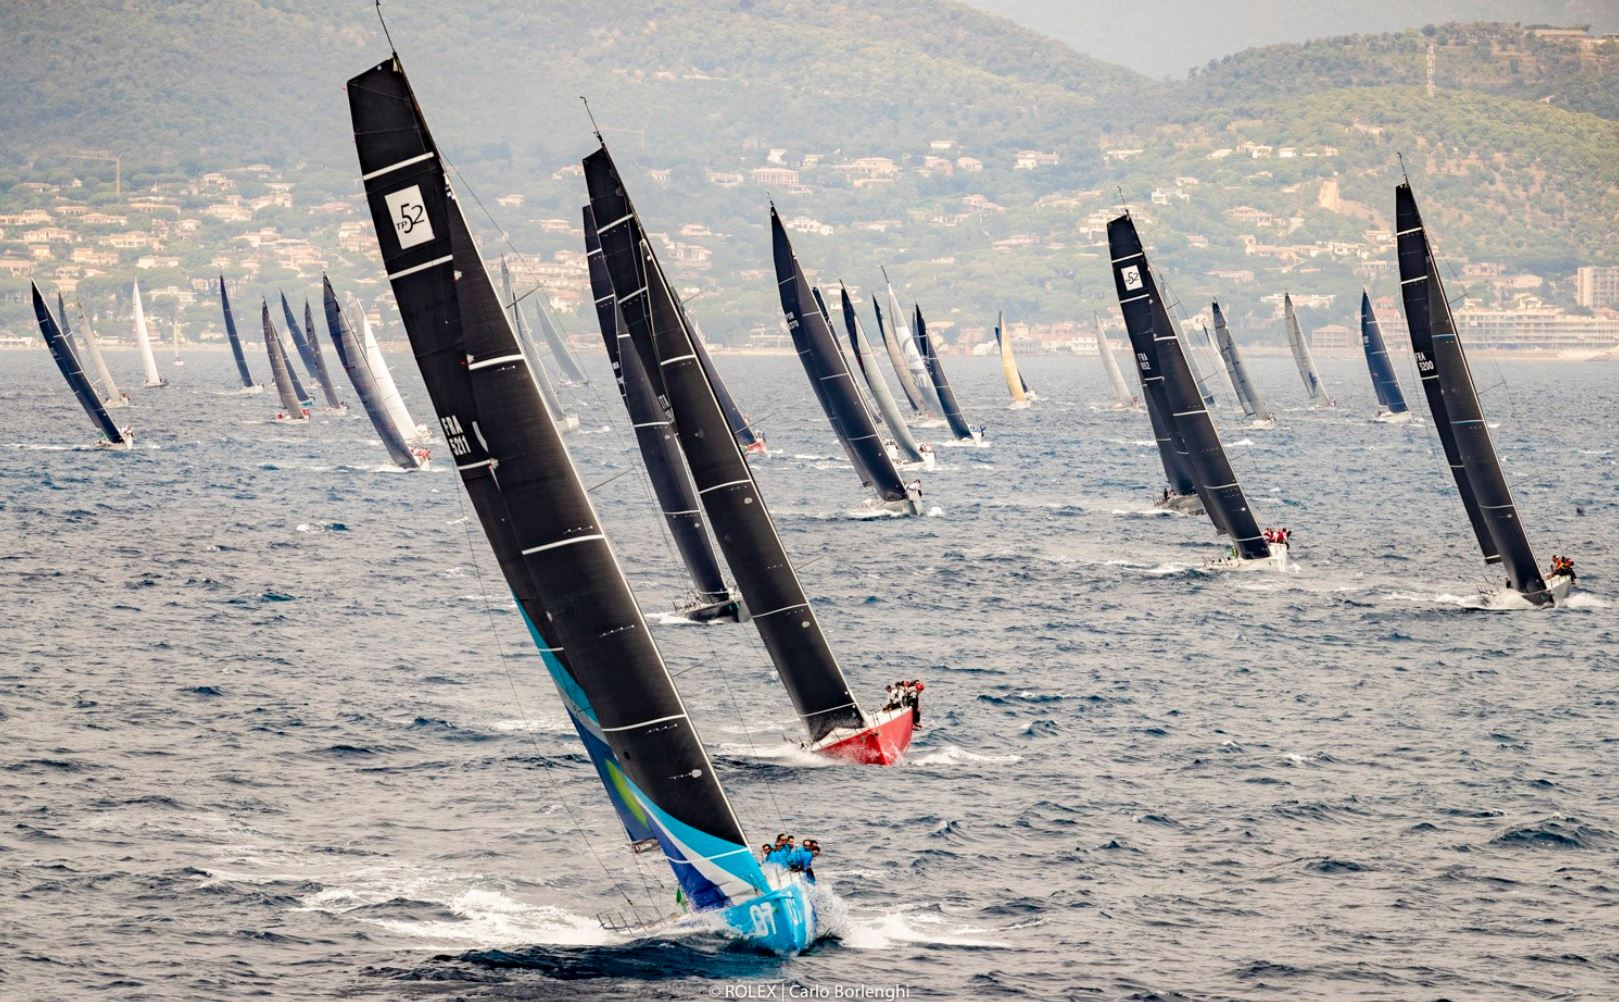 YCCS Members at ORC Worlds, Melges 24 European Sailing Series and Rolex Giraglia - NEWS - Yacht Club Costa Smeralda